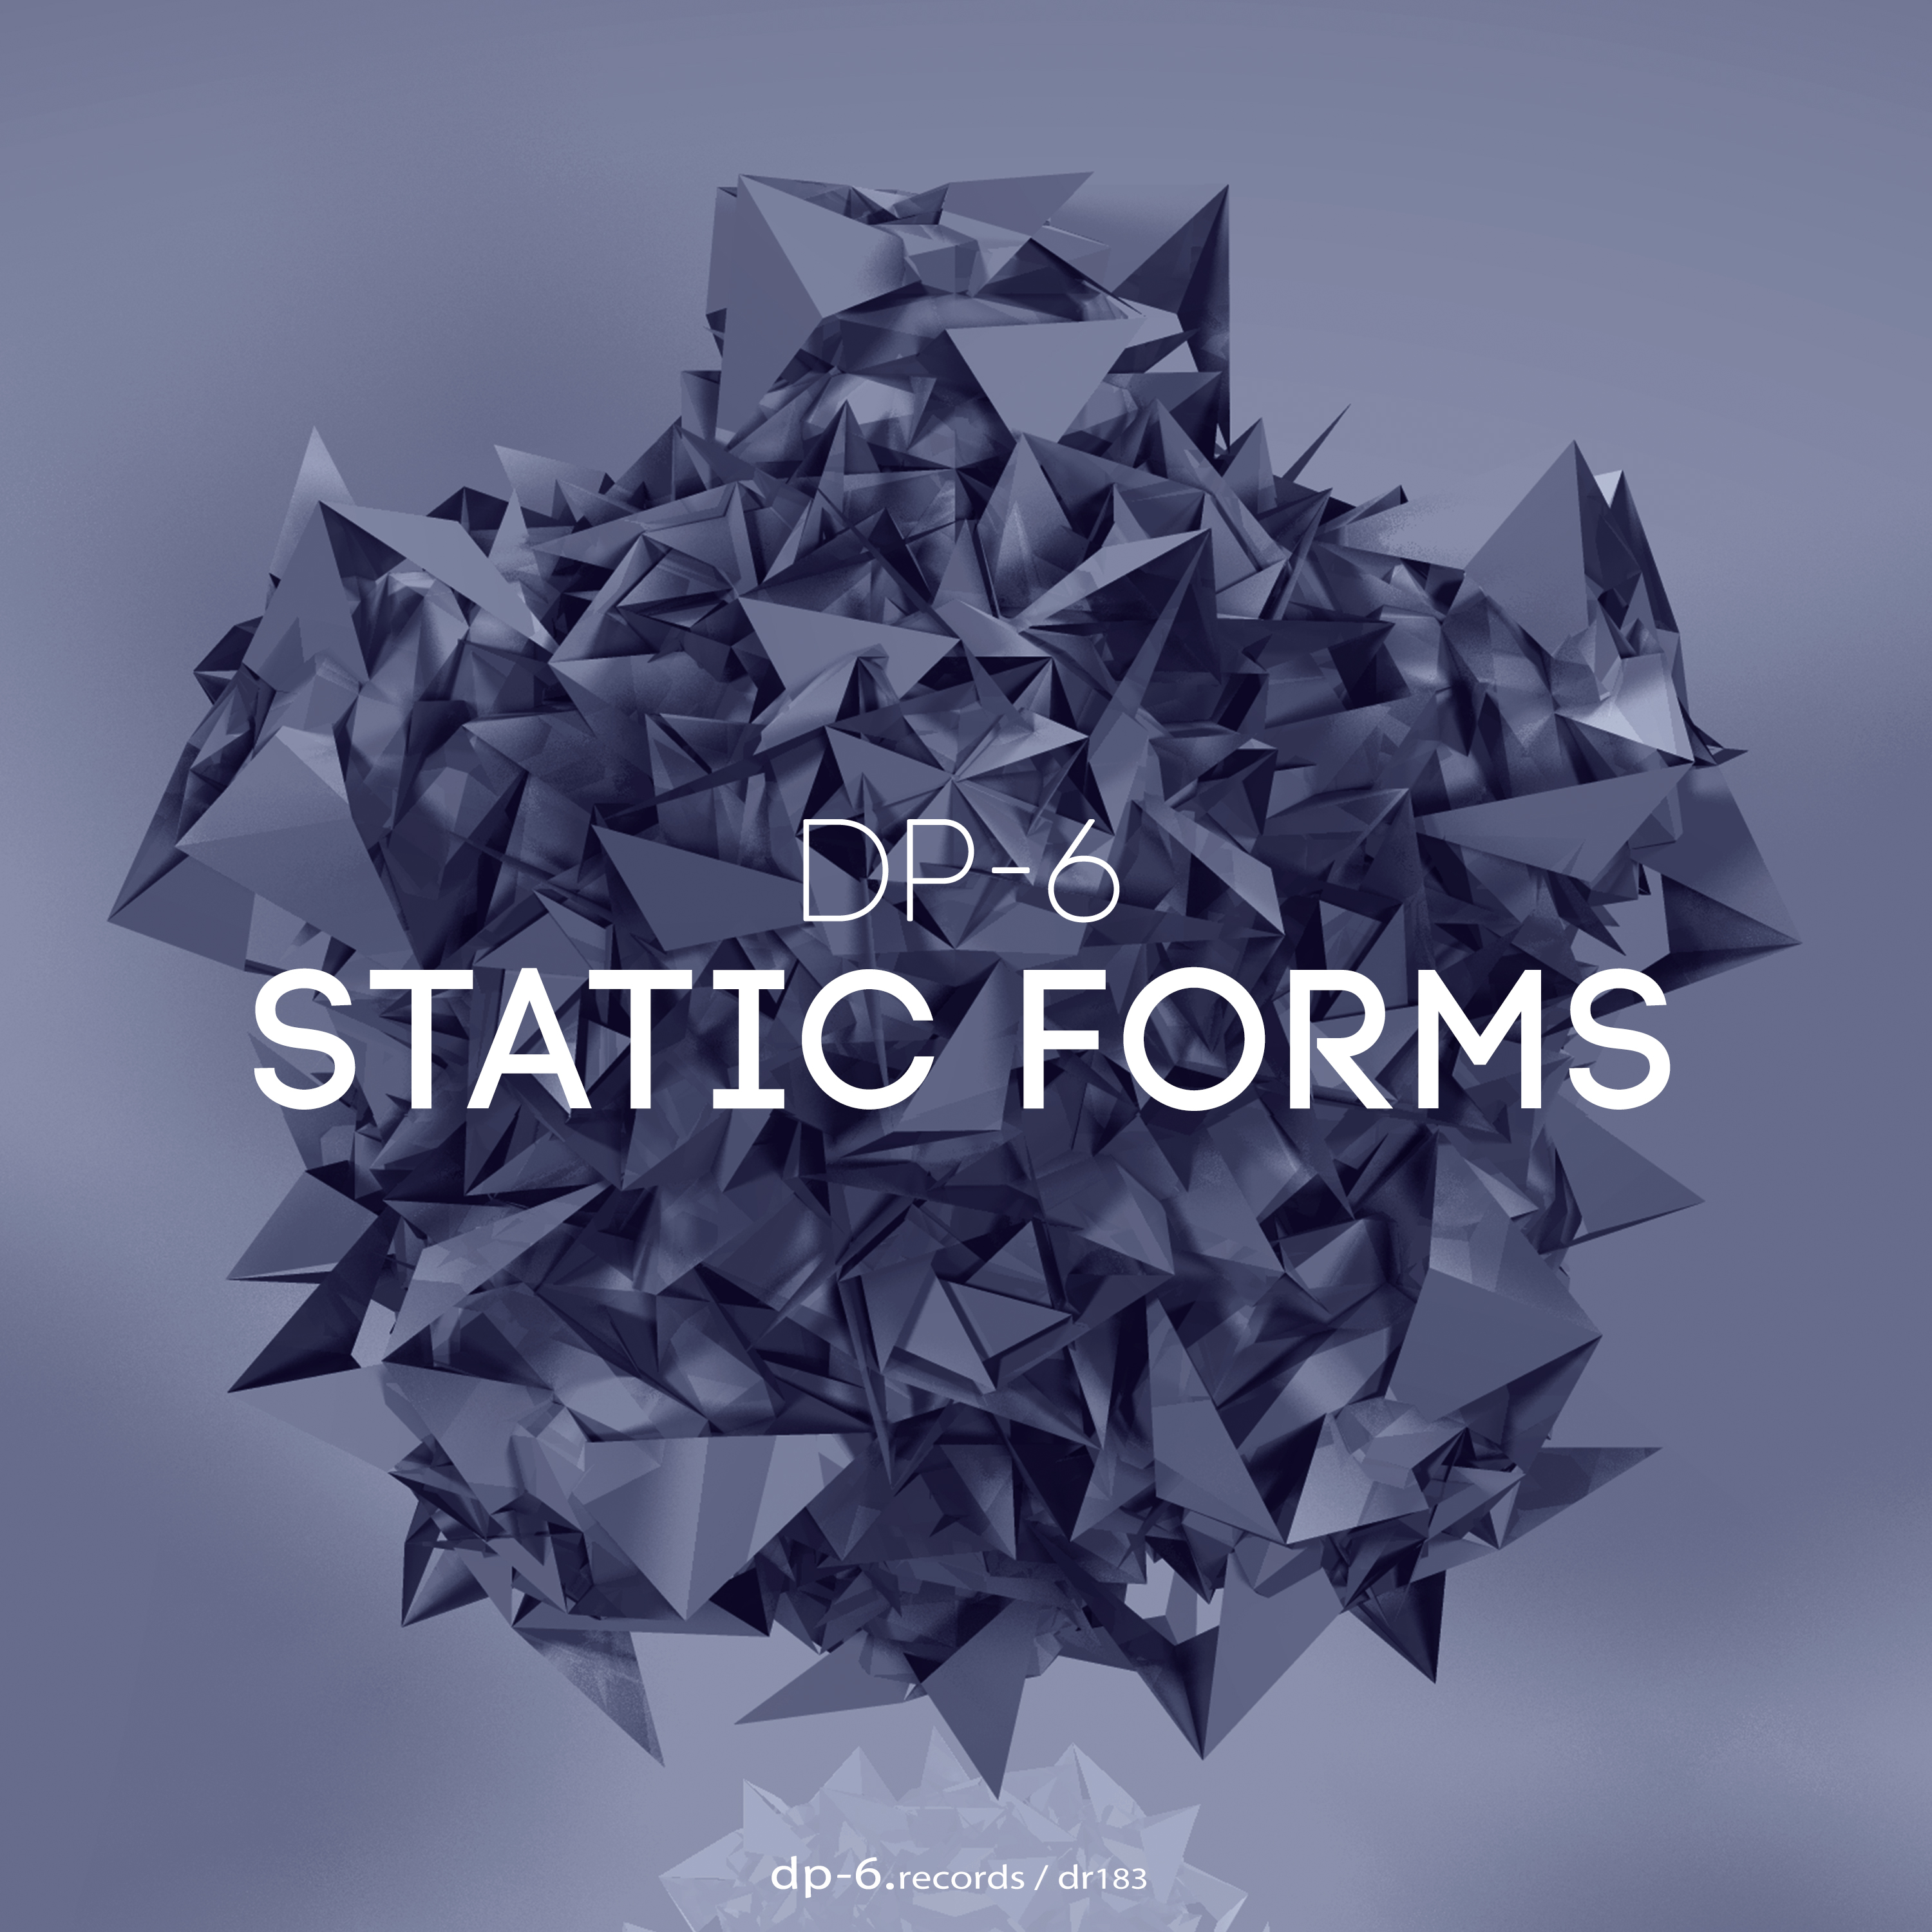 DP-6: Static Forms